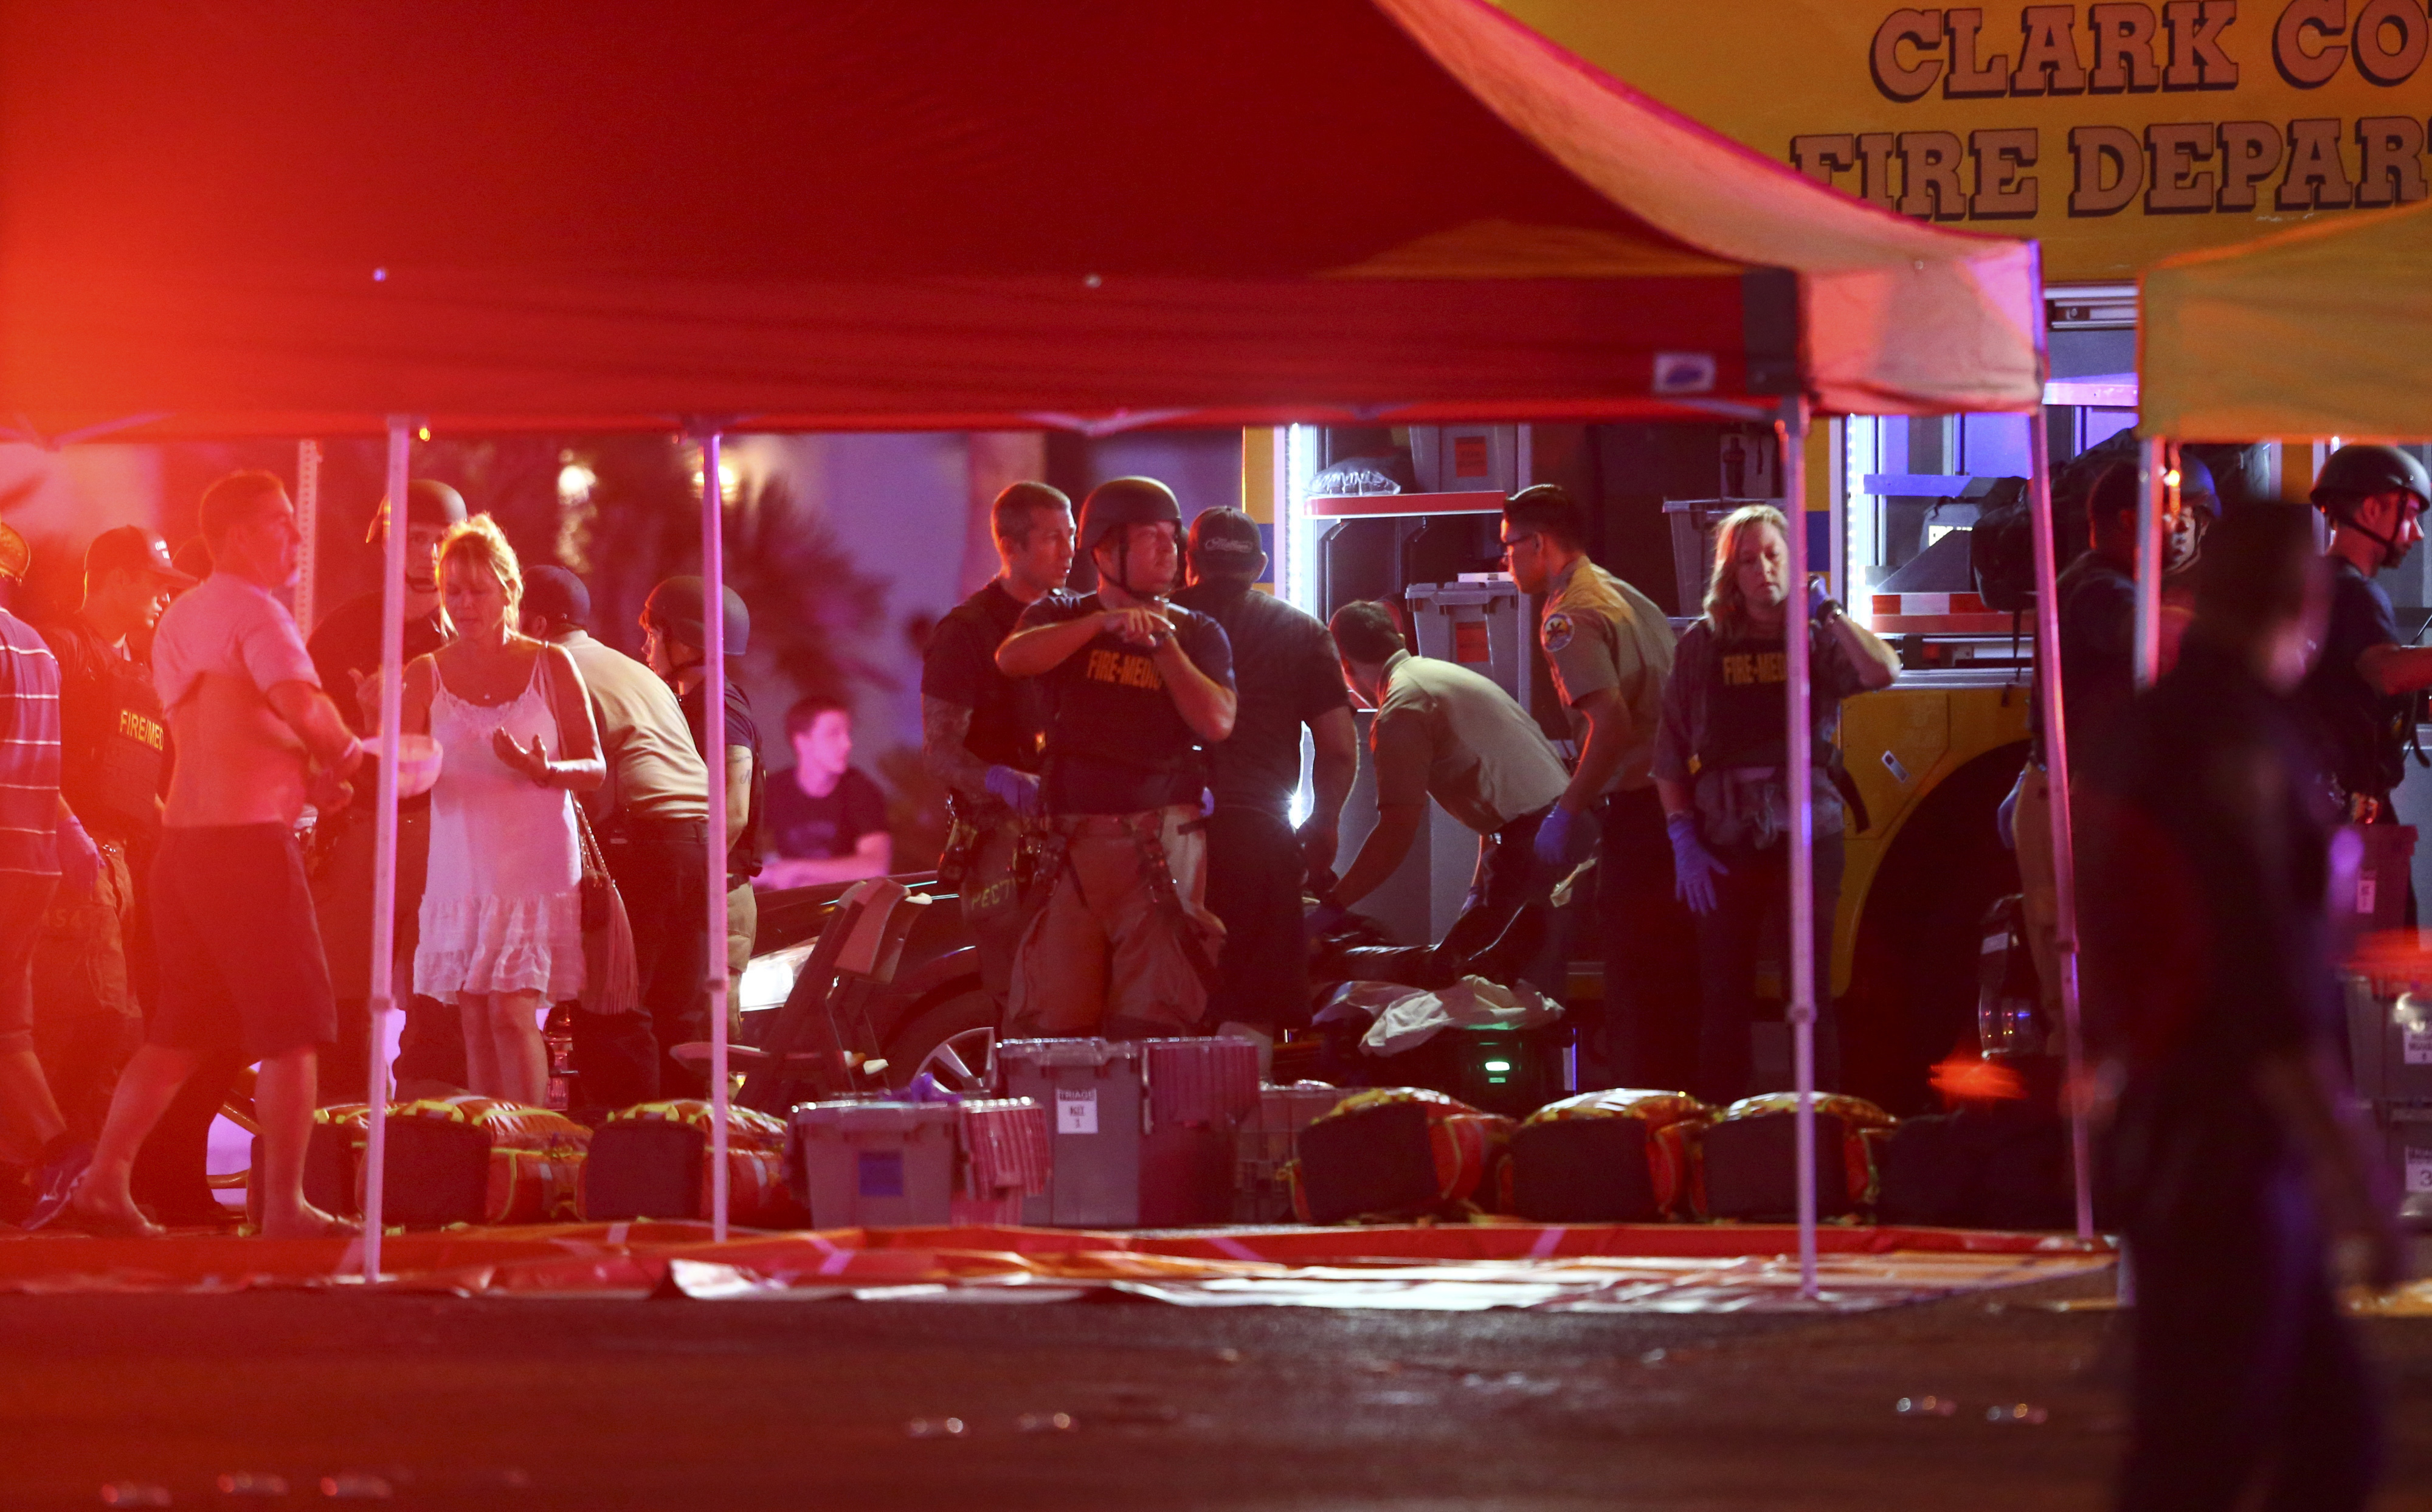 In this Oct. 1, 2017 file photo, medics treat the wounded as Las Vegas police respond during an active shooter situation on the Las Vegas Strip in Las Vegas.